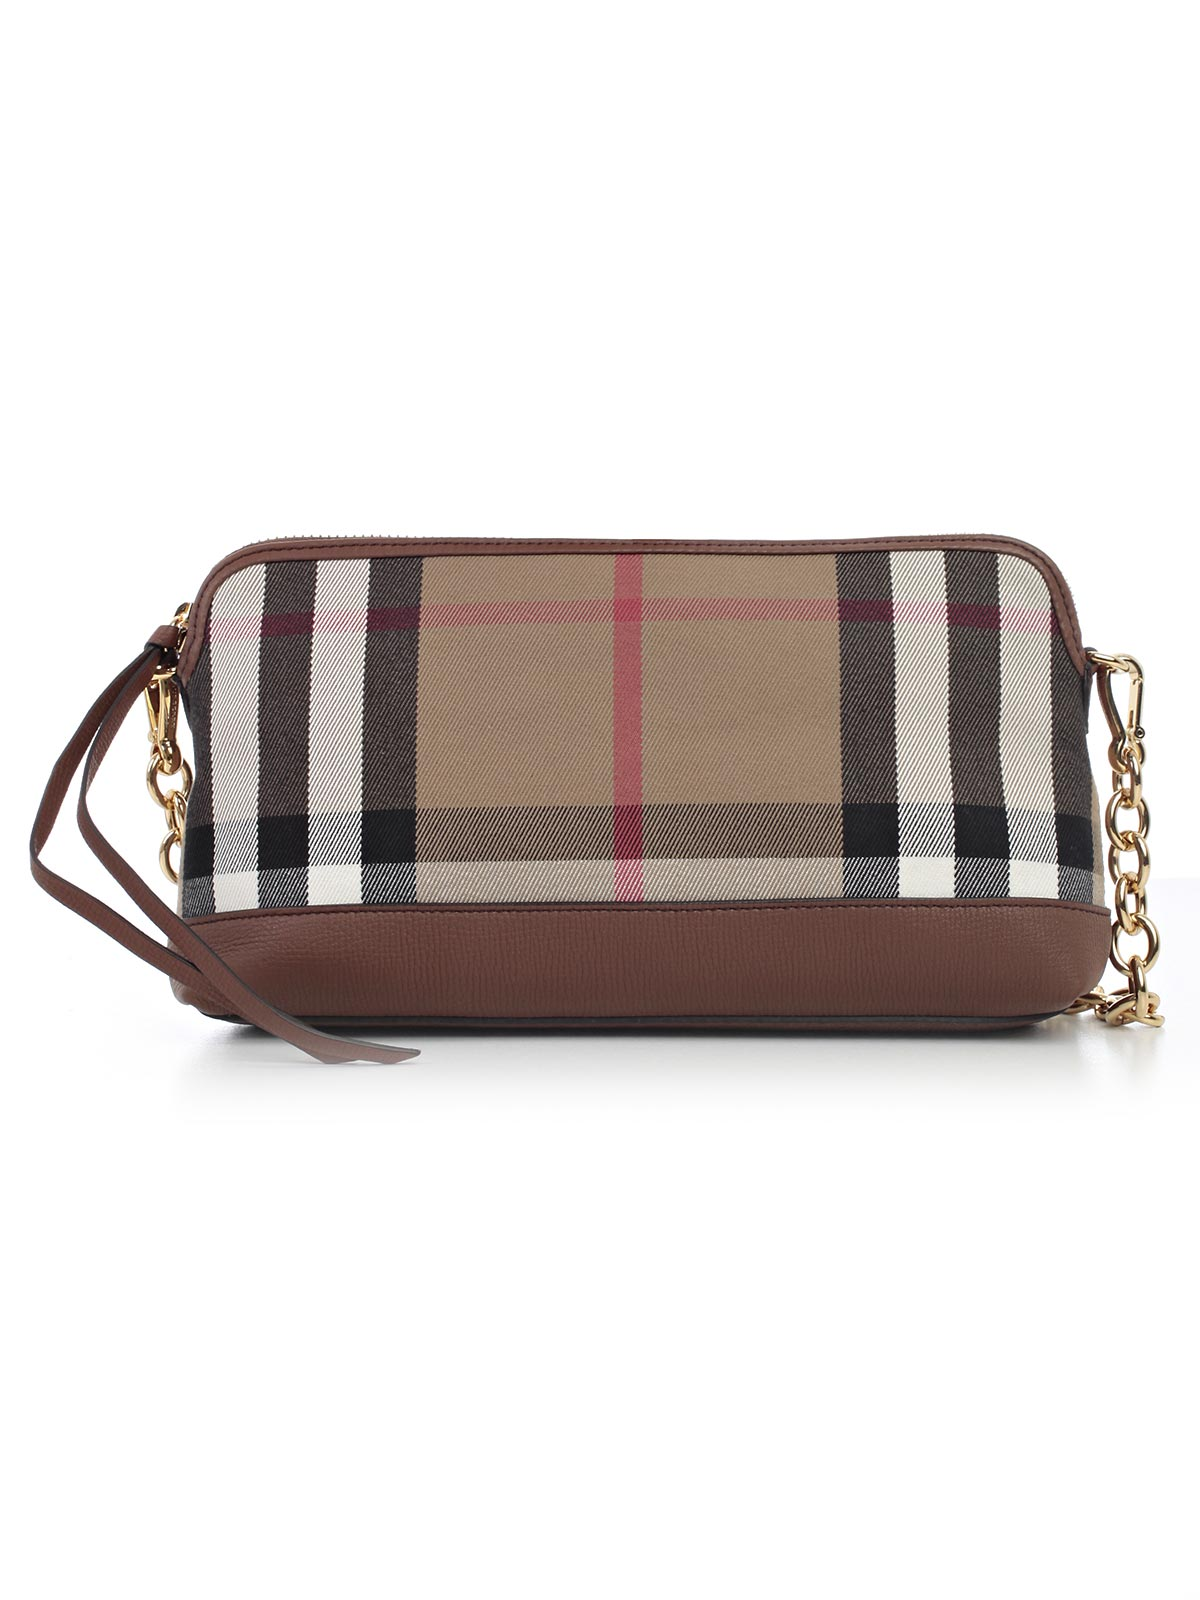 Picture of BURBERRY BAG